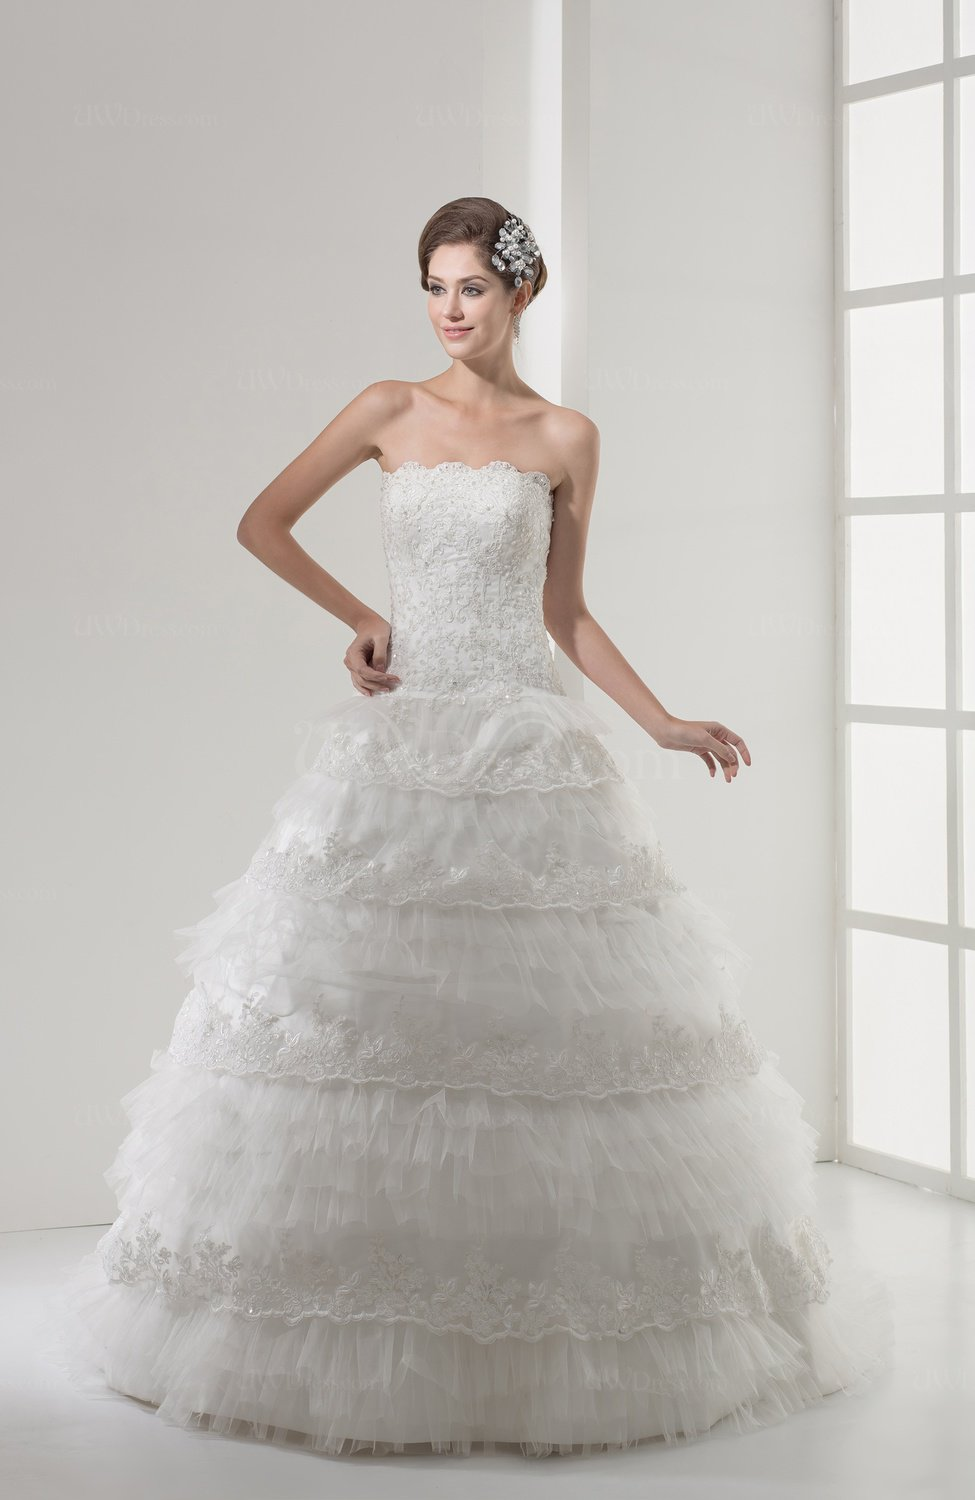 Mature Church Princess Strapless Tiered Bridal Gowns - UWDress.com